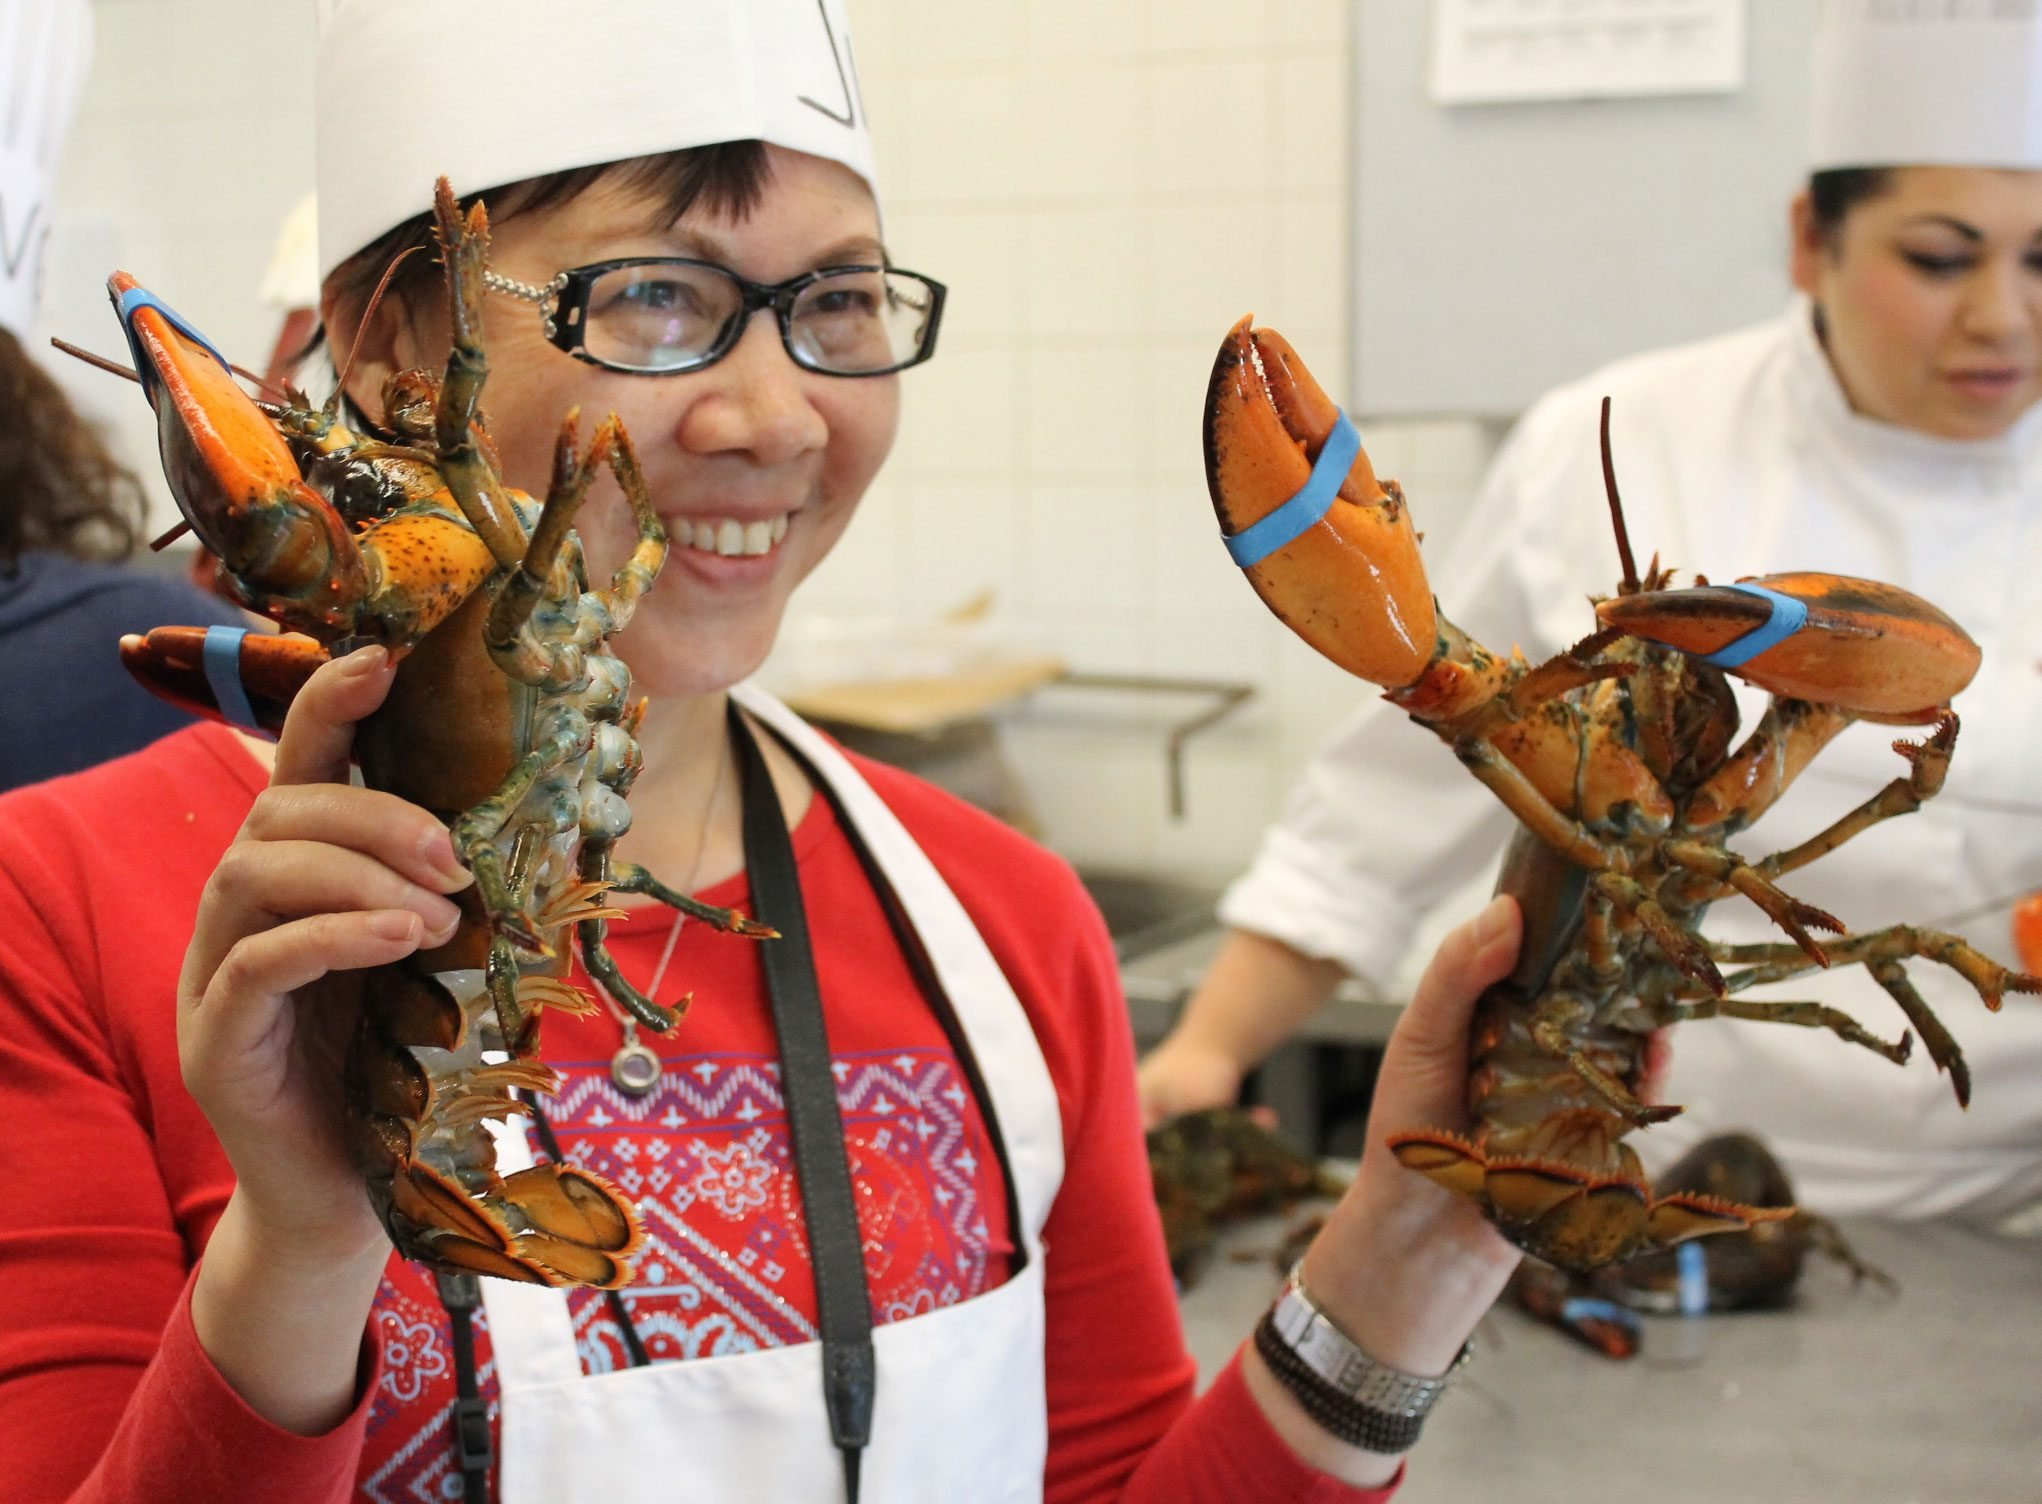 Kick Up Your Kitchen Skills at a Culinary Boot Camp in P.E.I.